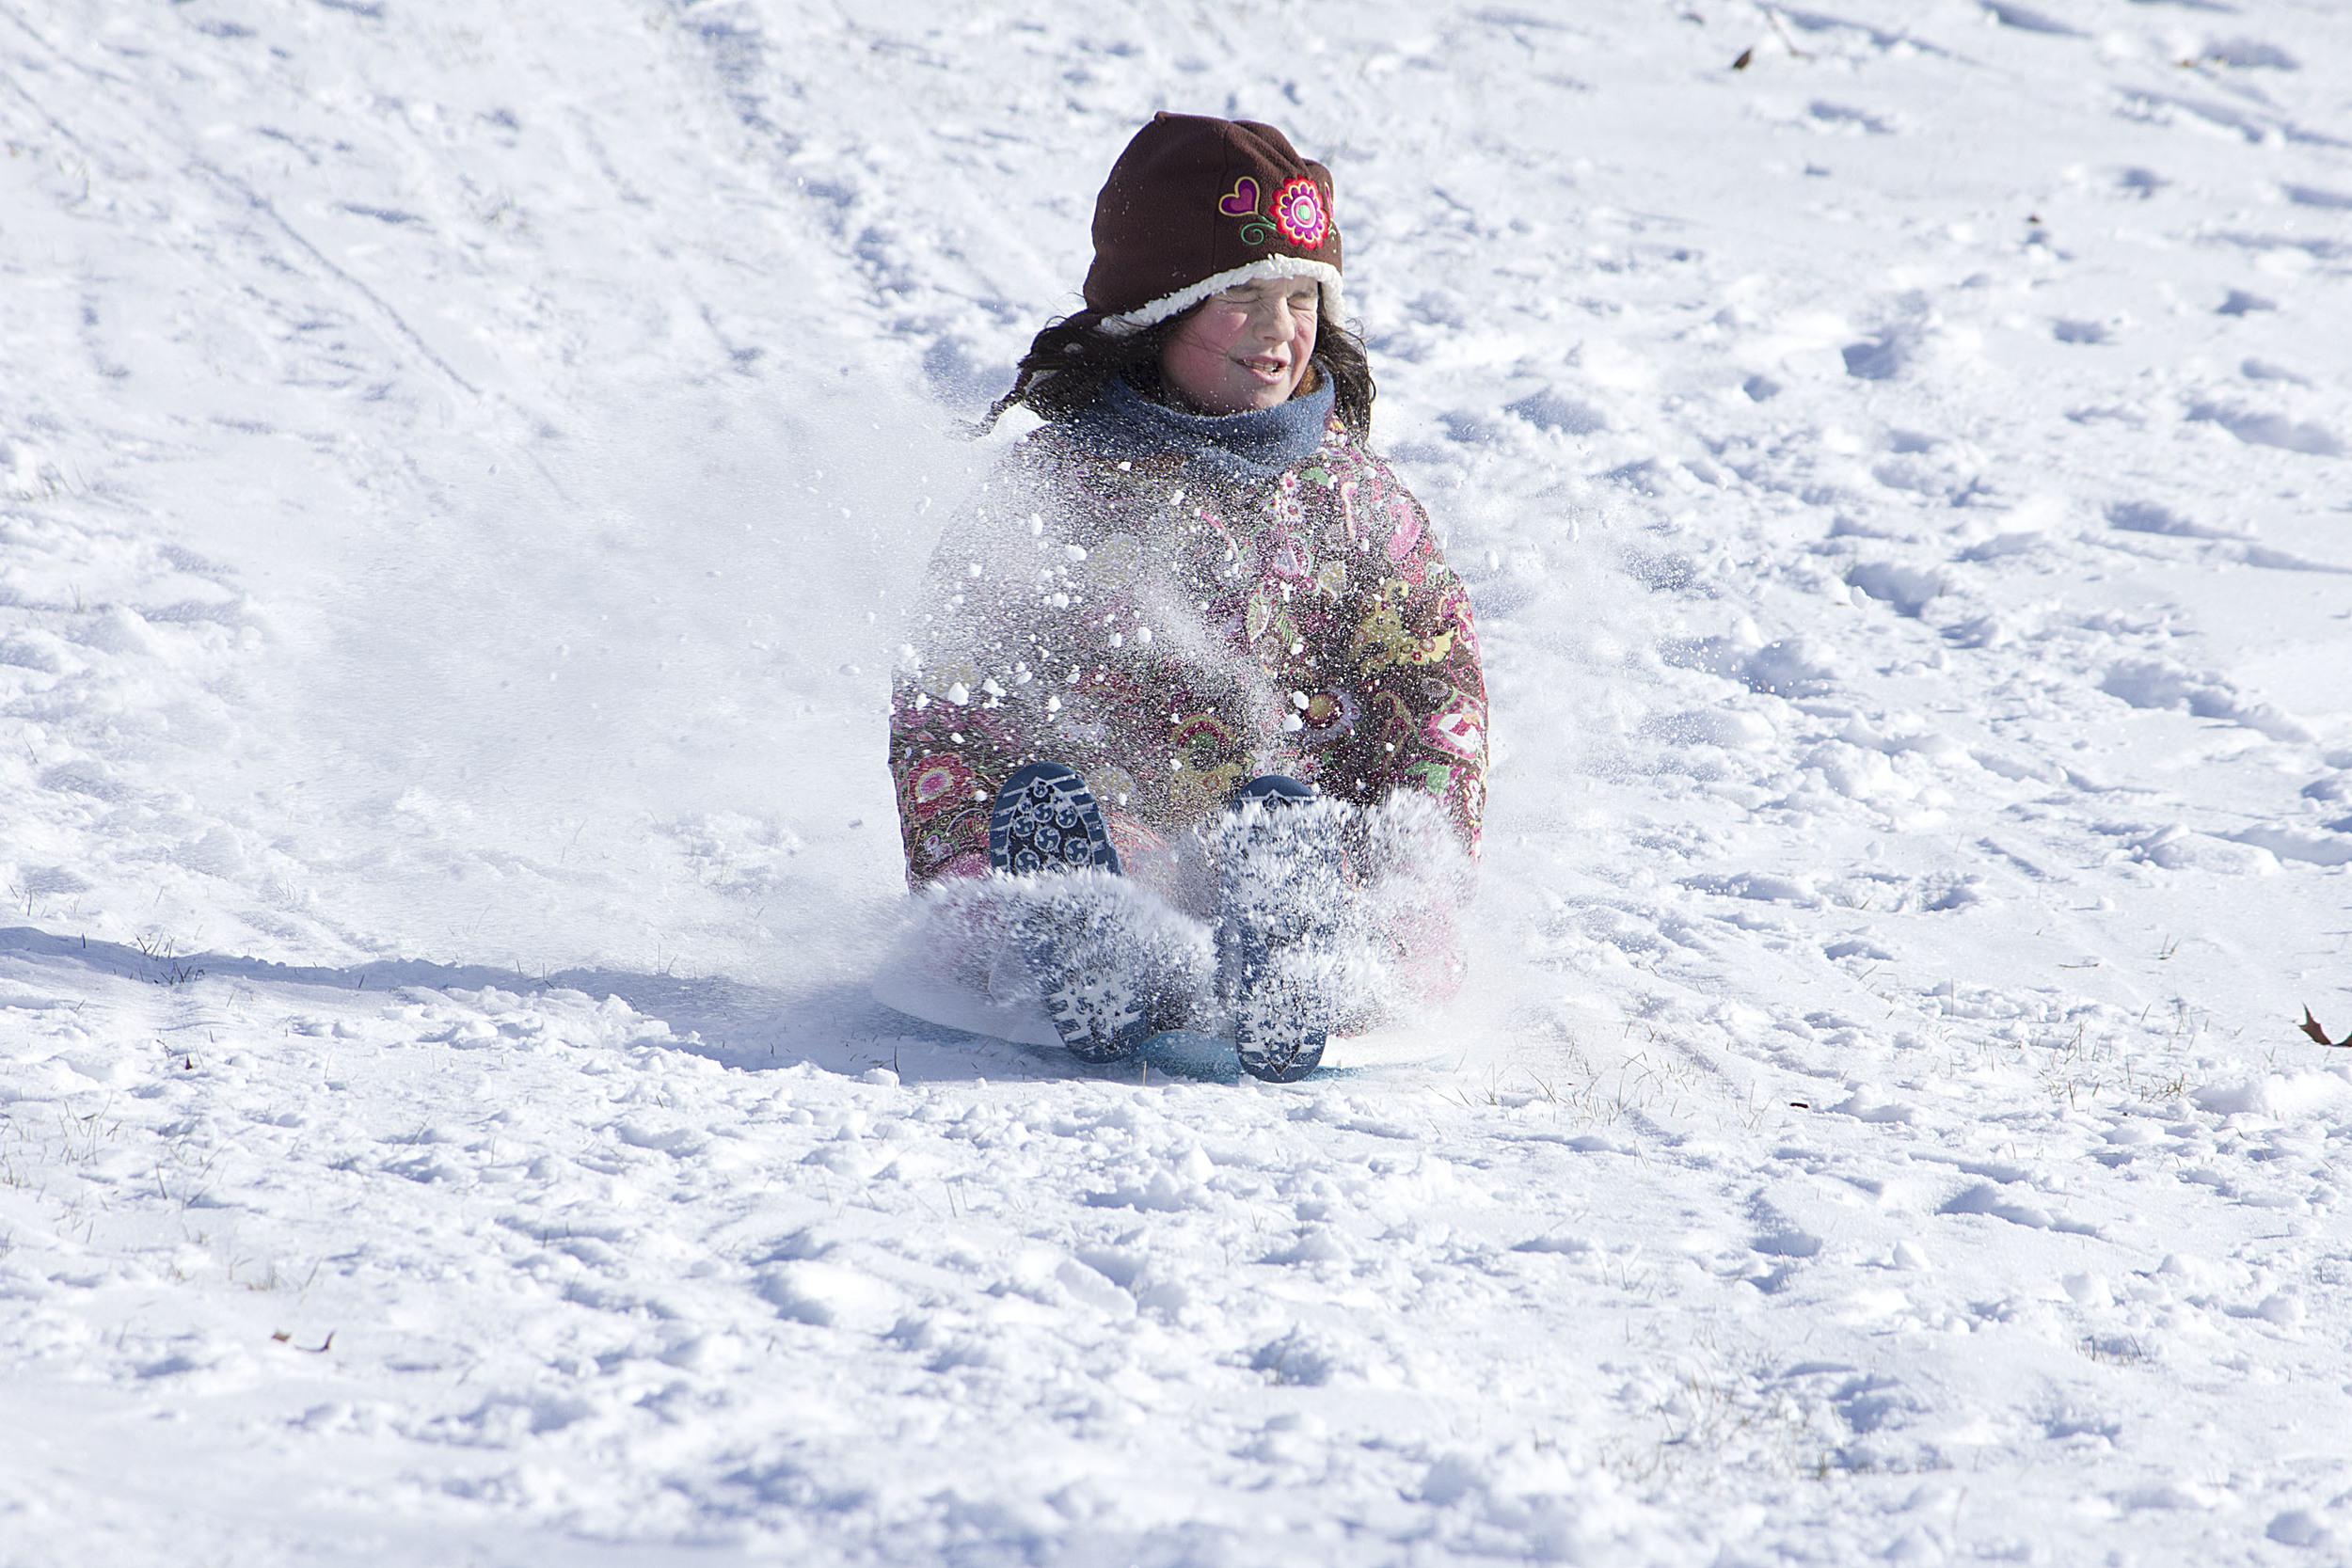 Norah, 7, sleds downhill as snow kicks up in her face.